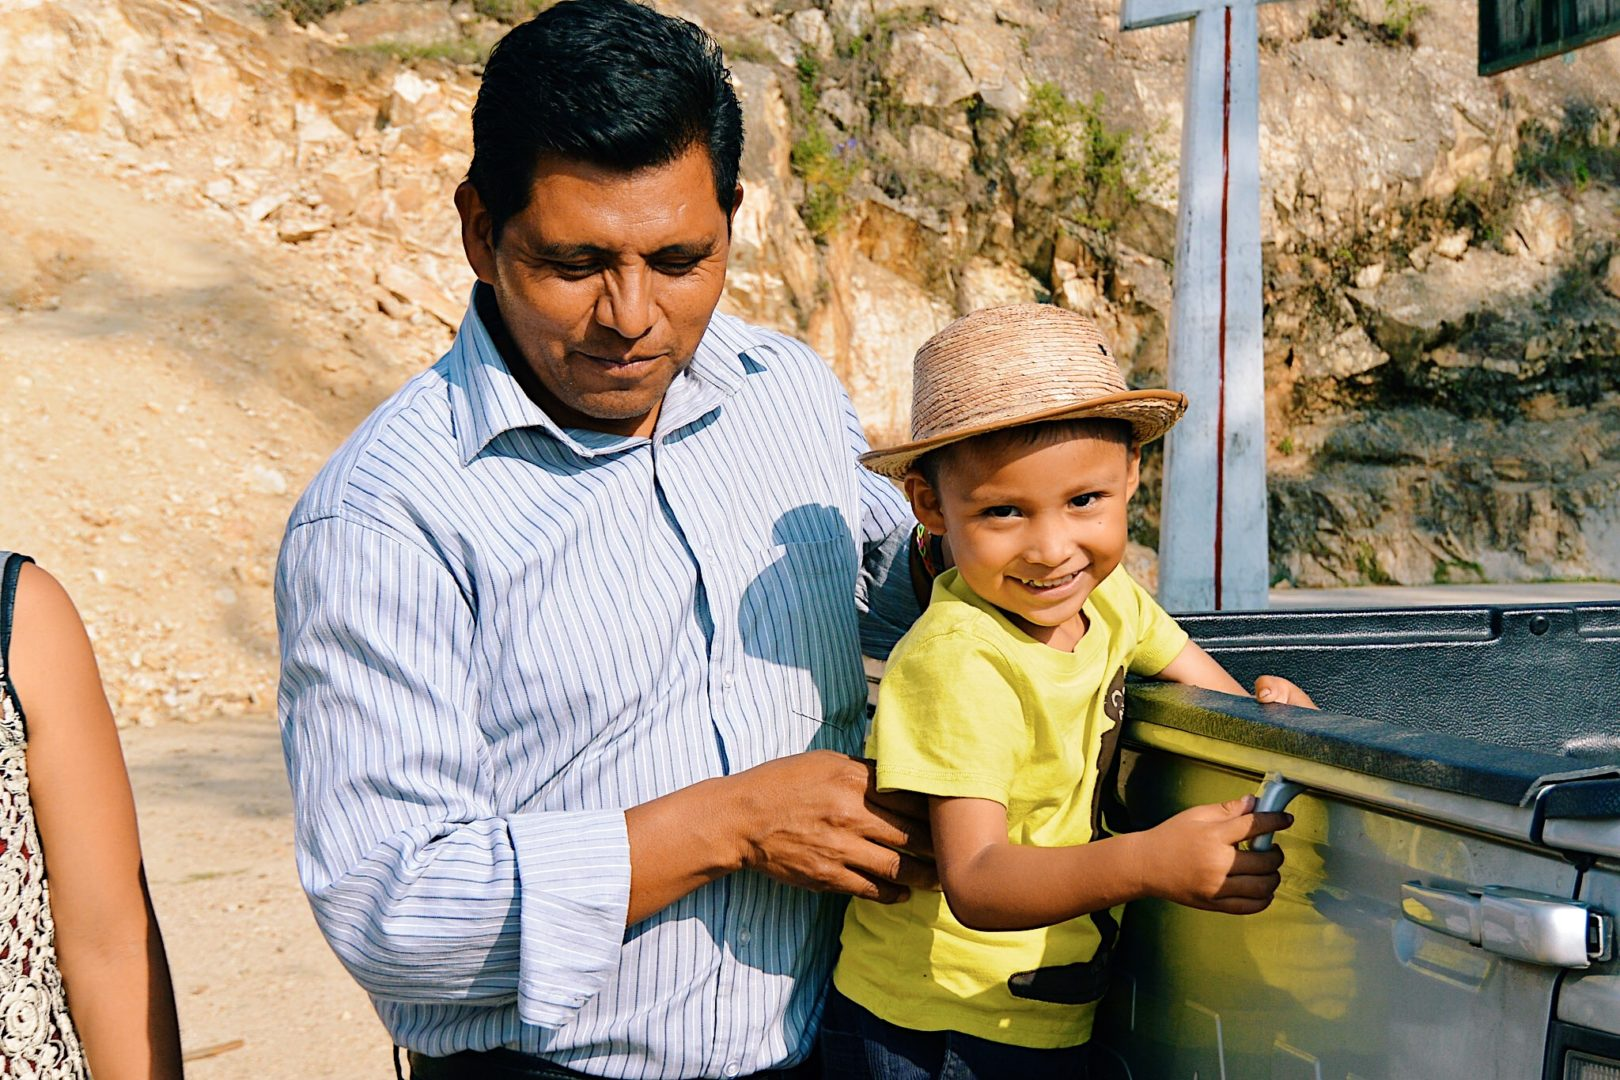 Plant With Purpose empowers dads around the world.